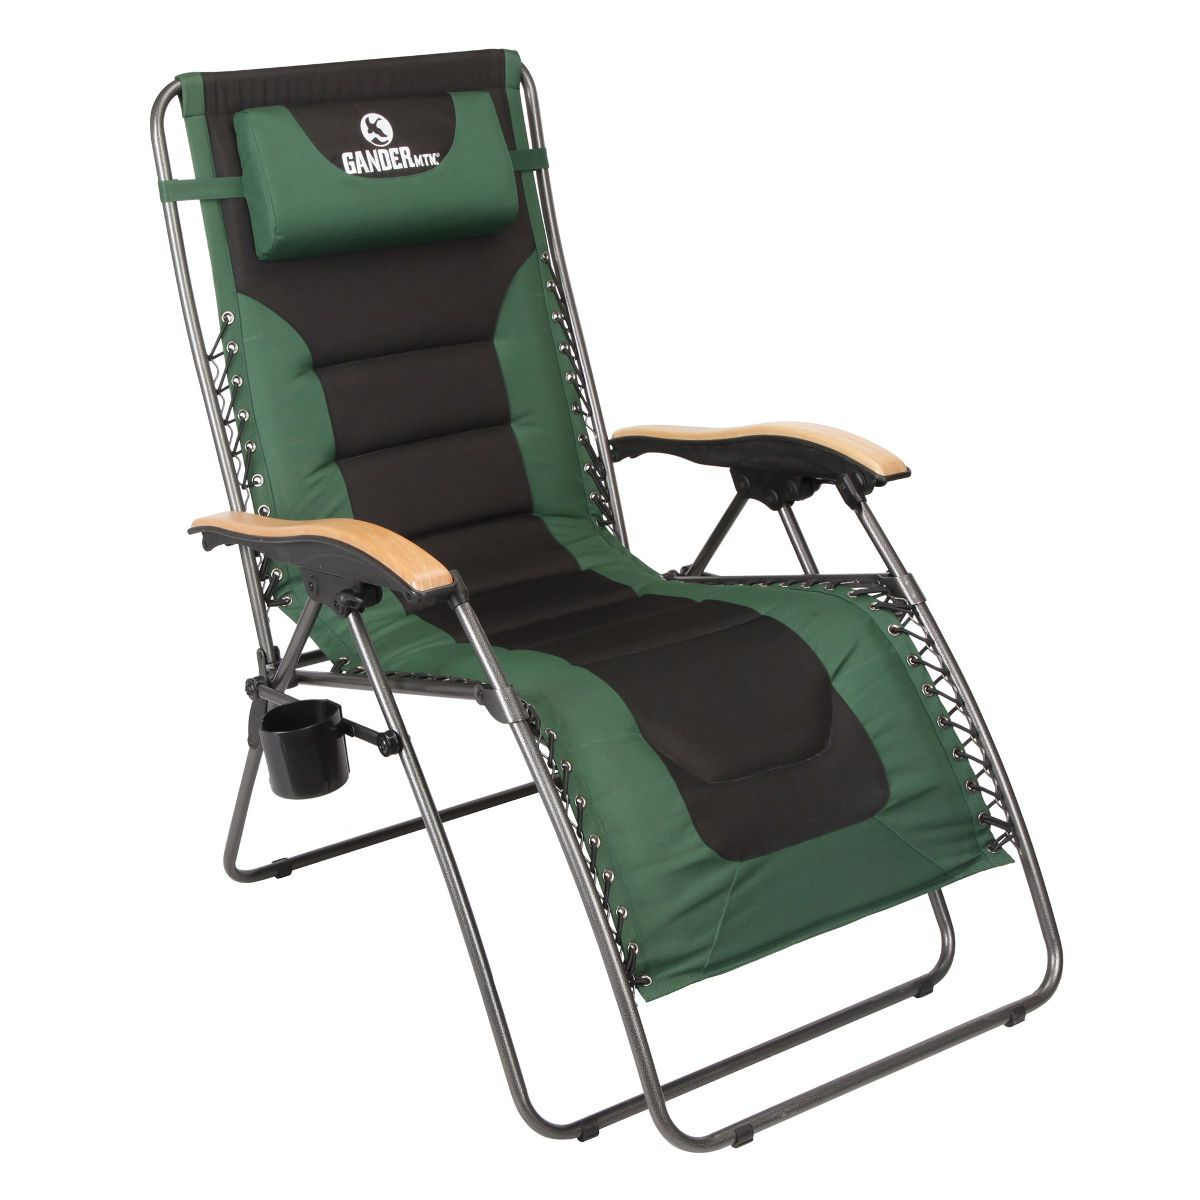 Awesome Gander Mountain Zero Gravity Padded Lounger X Large 760904 Pabps2019 Chair Design Images Pabps2019Com